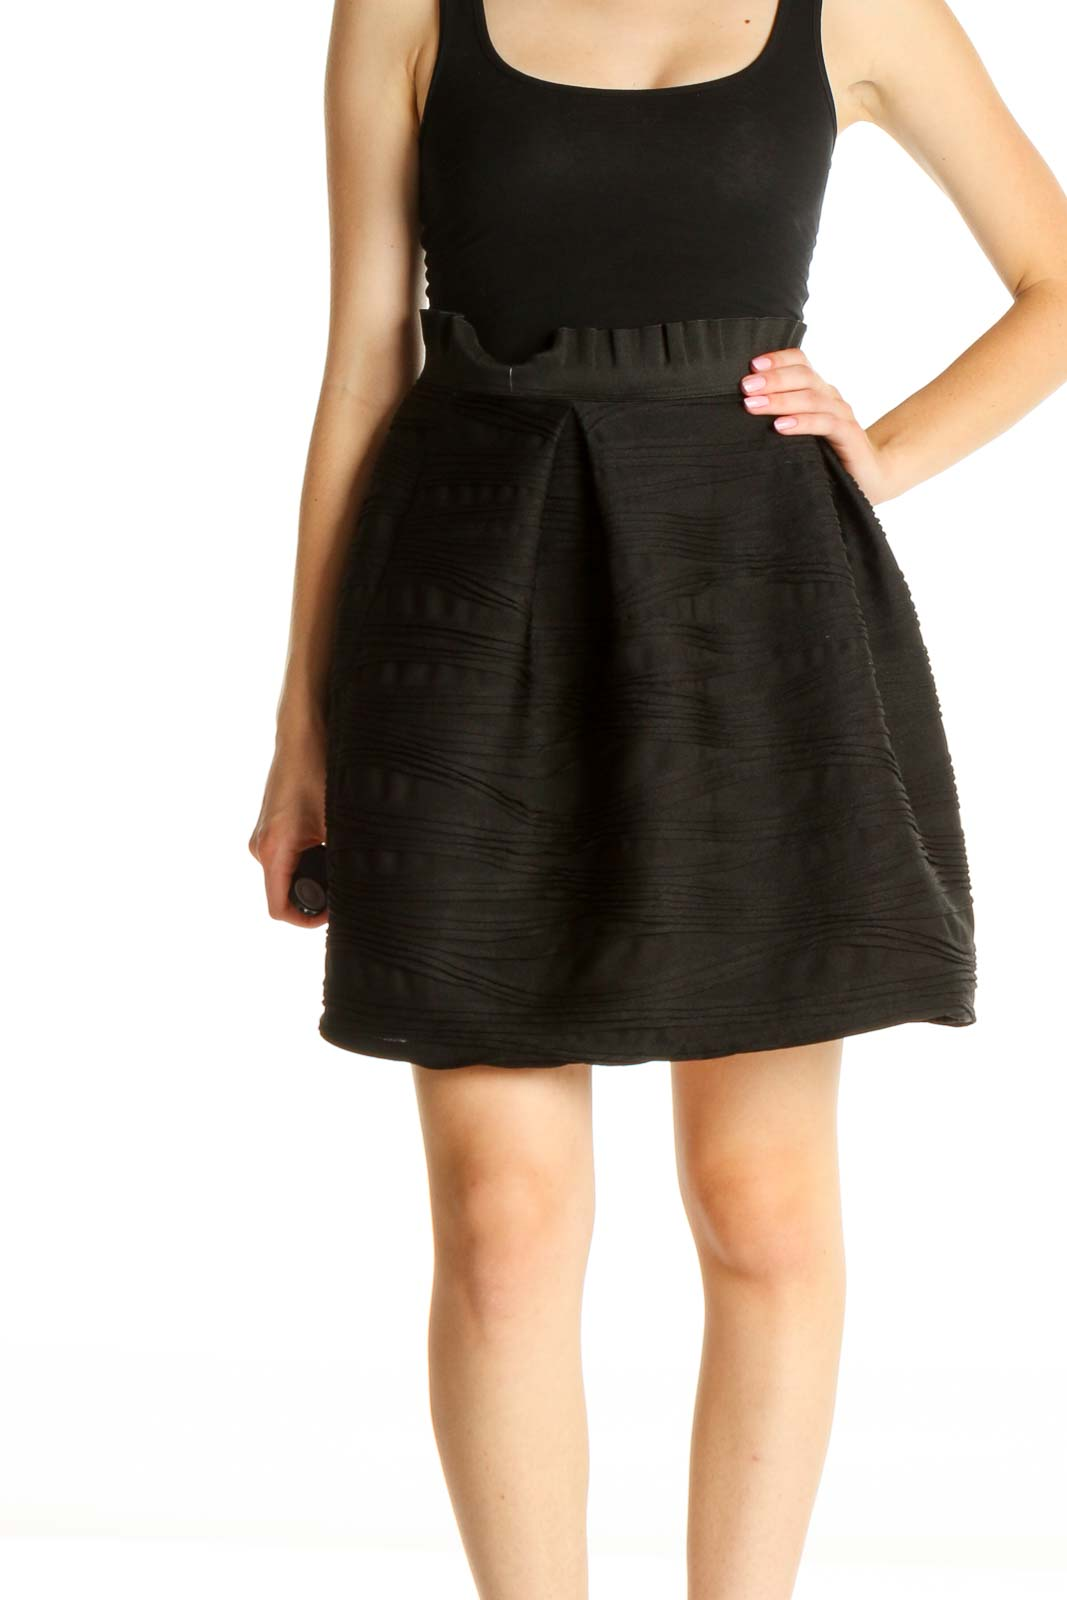 Black Solid Chic Flared Skirt Front